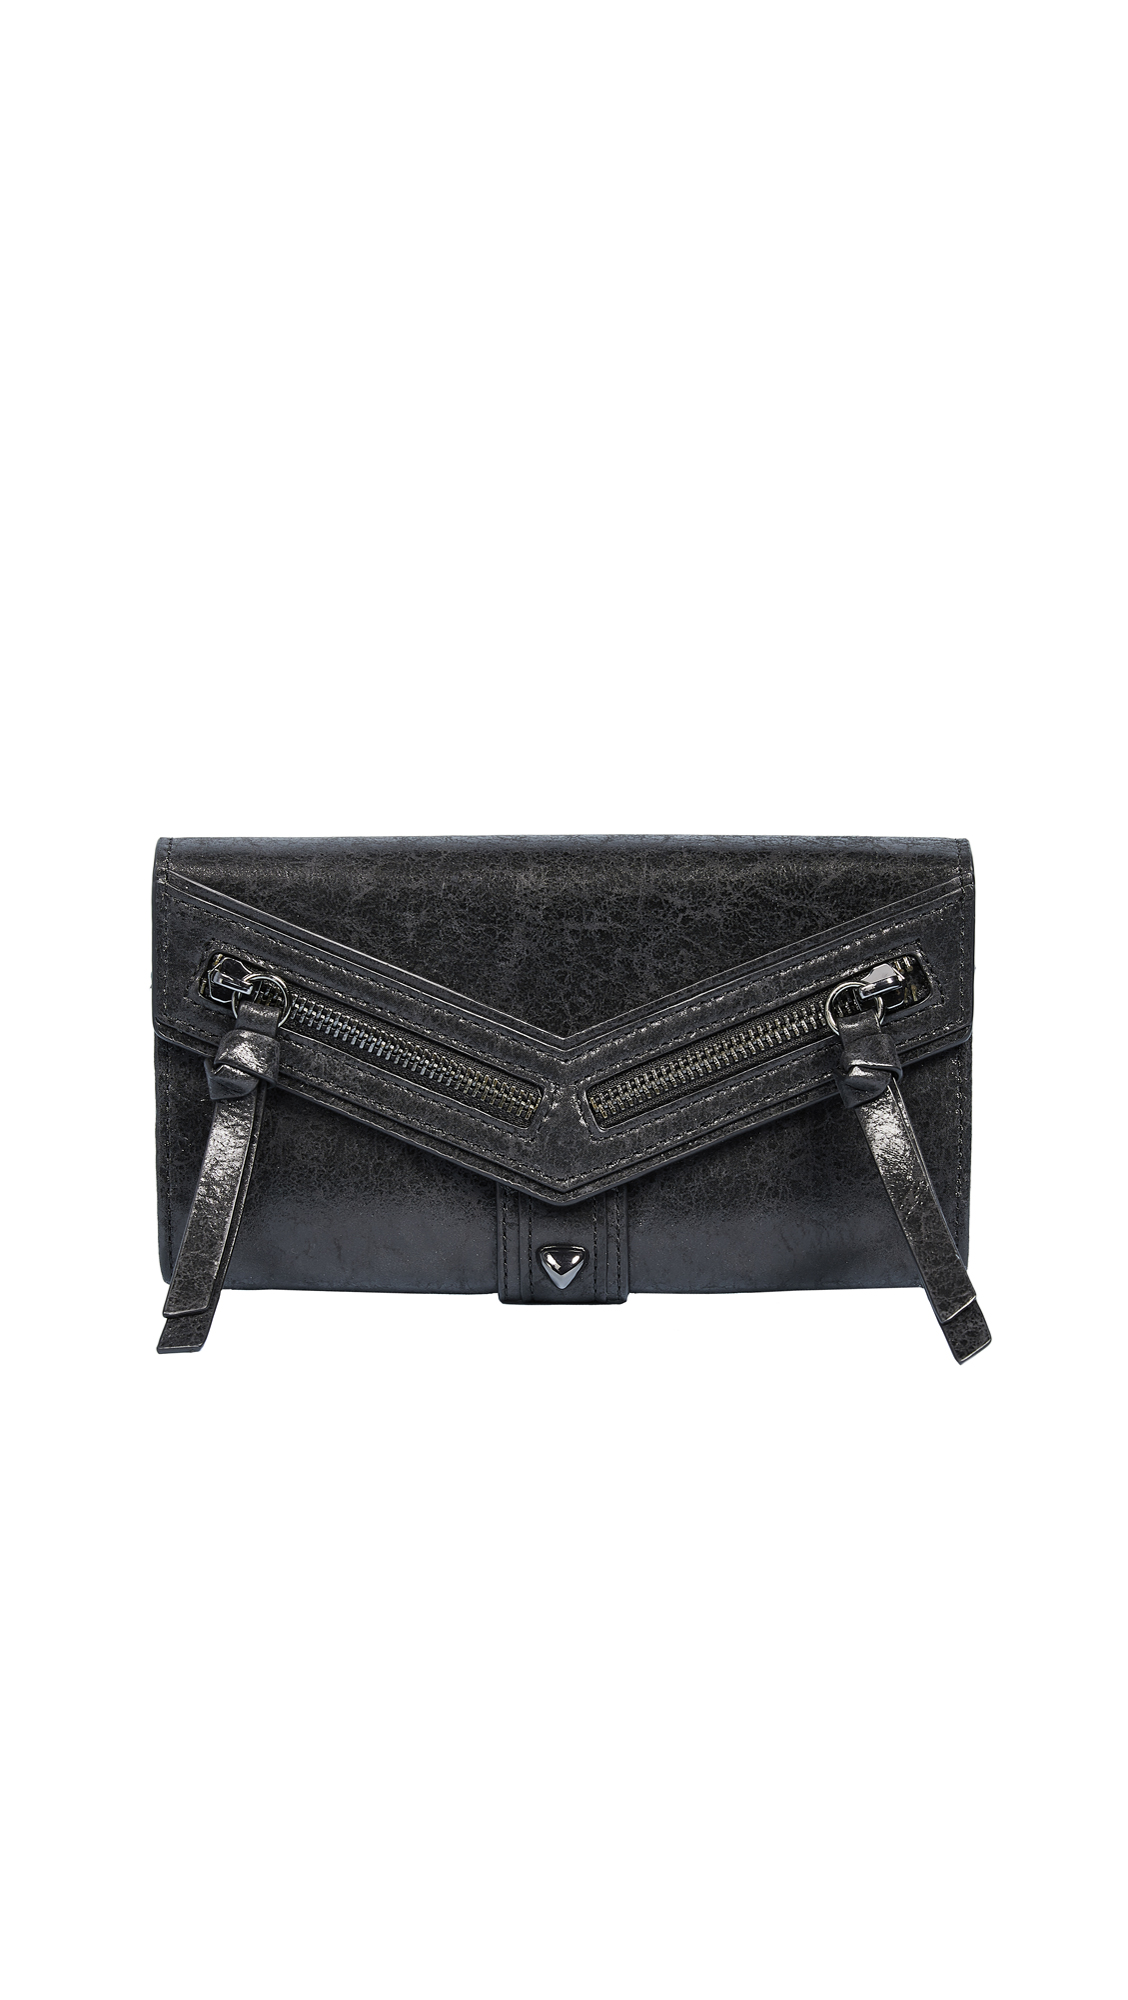 Botkier Trigger Flap Wallet - Black